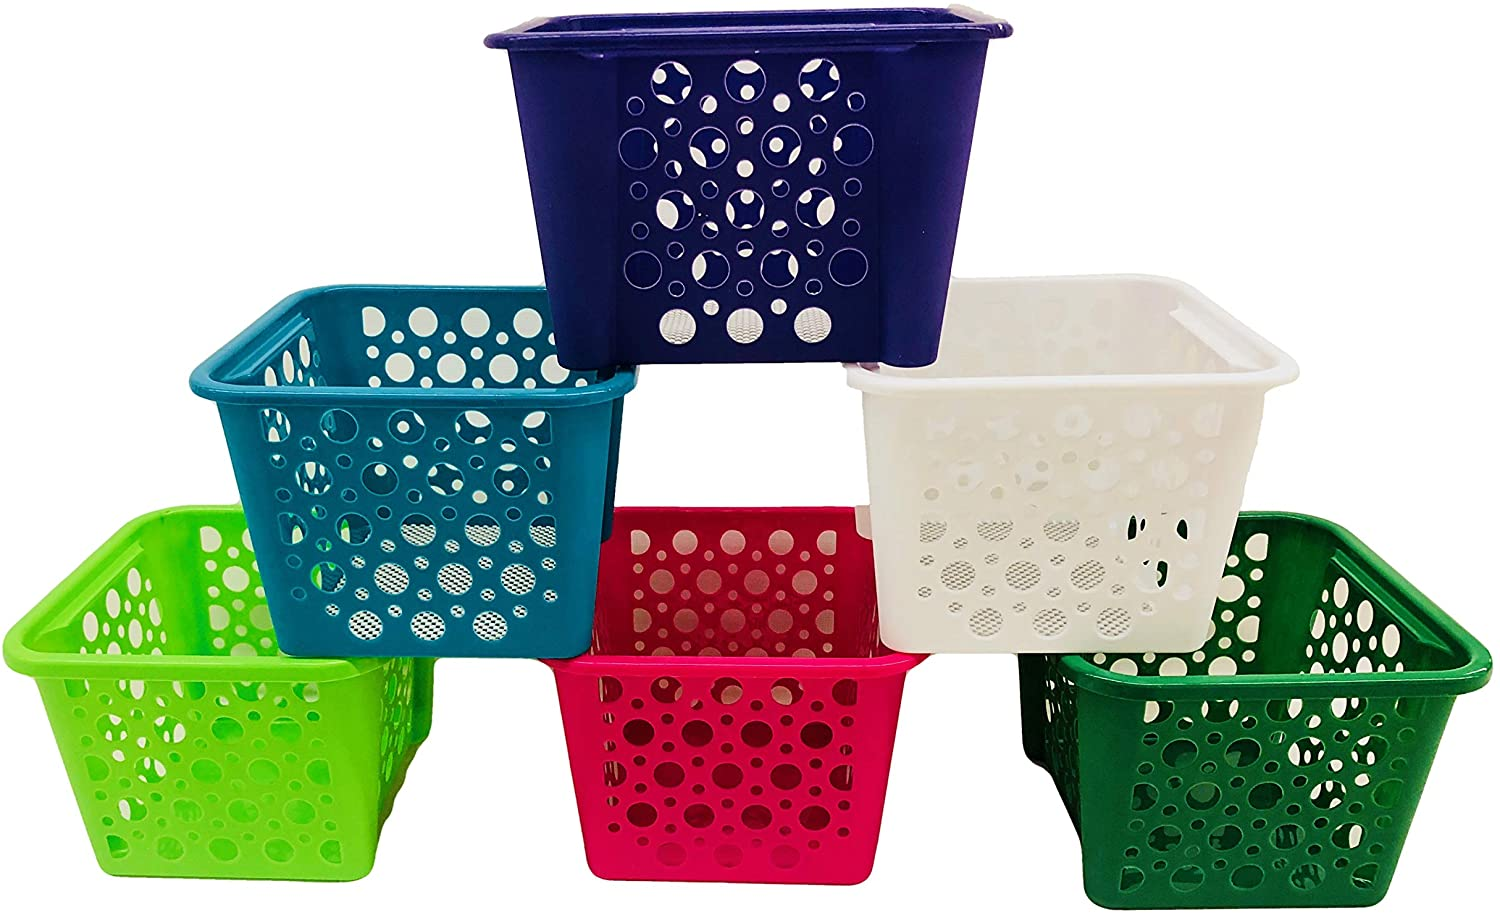 Java Set of 6 Storage Plastic Stacking Bins in Assorted Colors